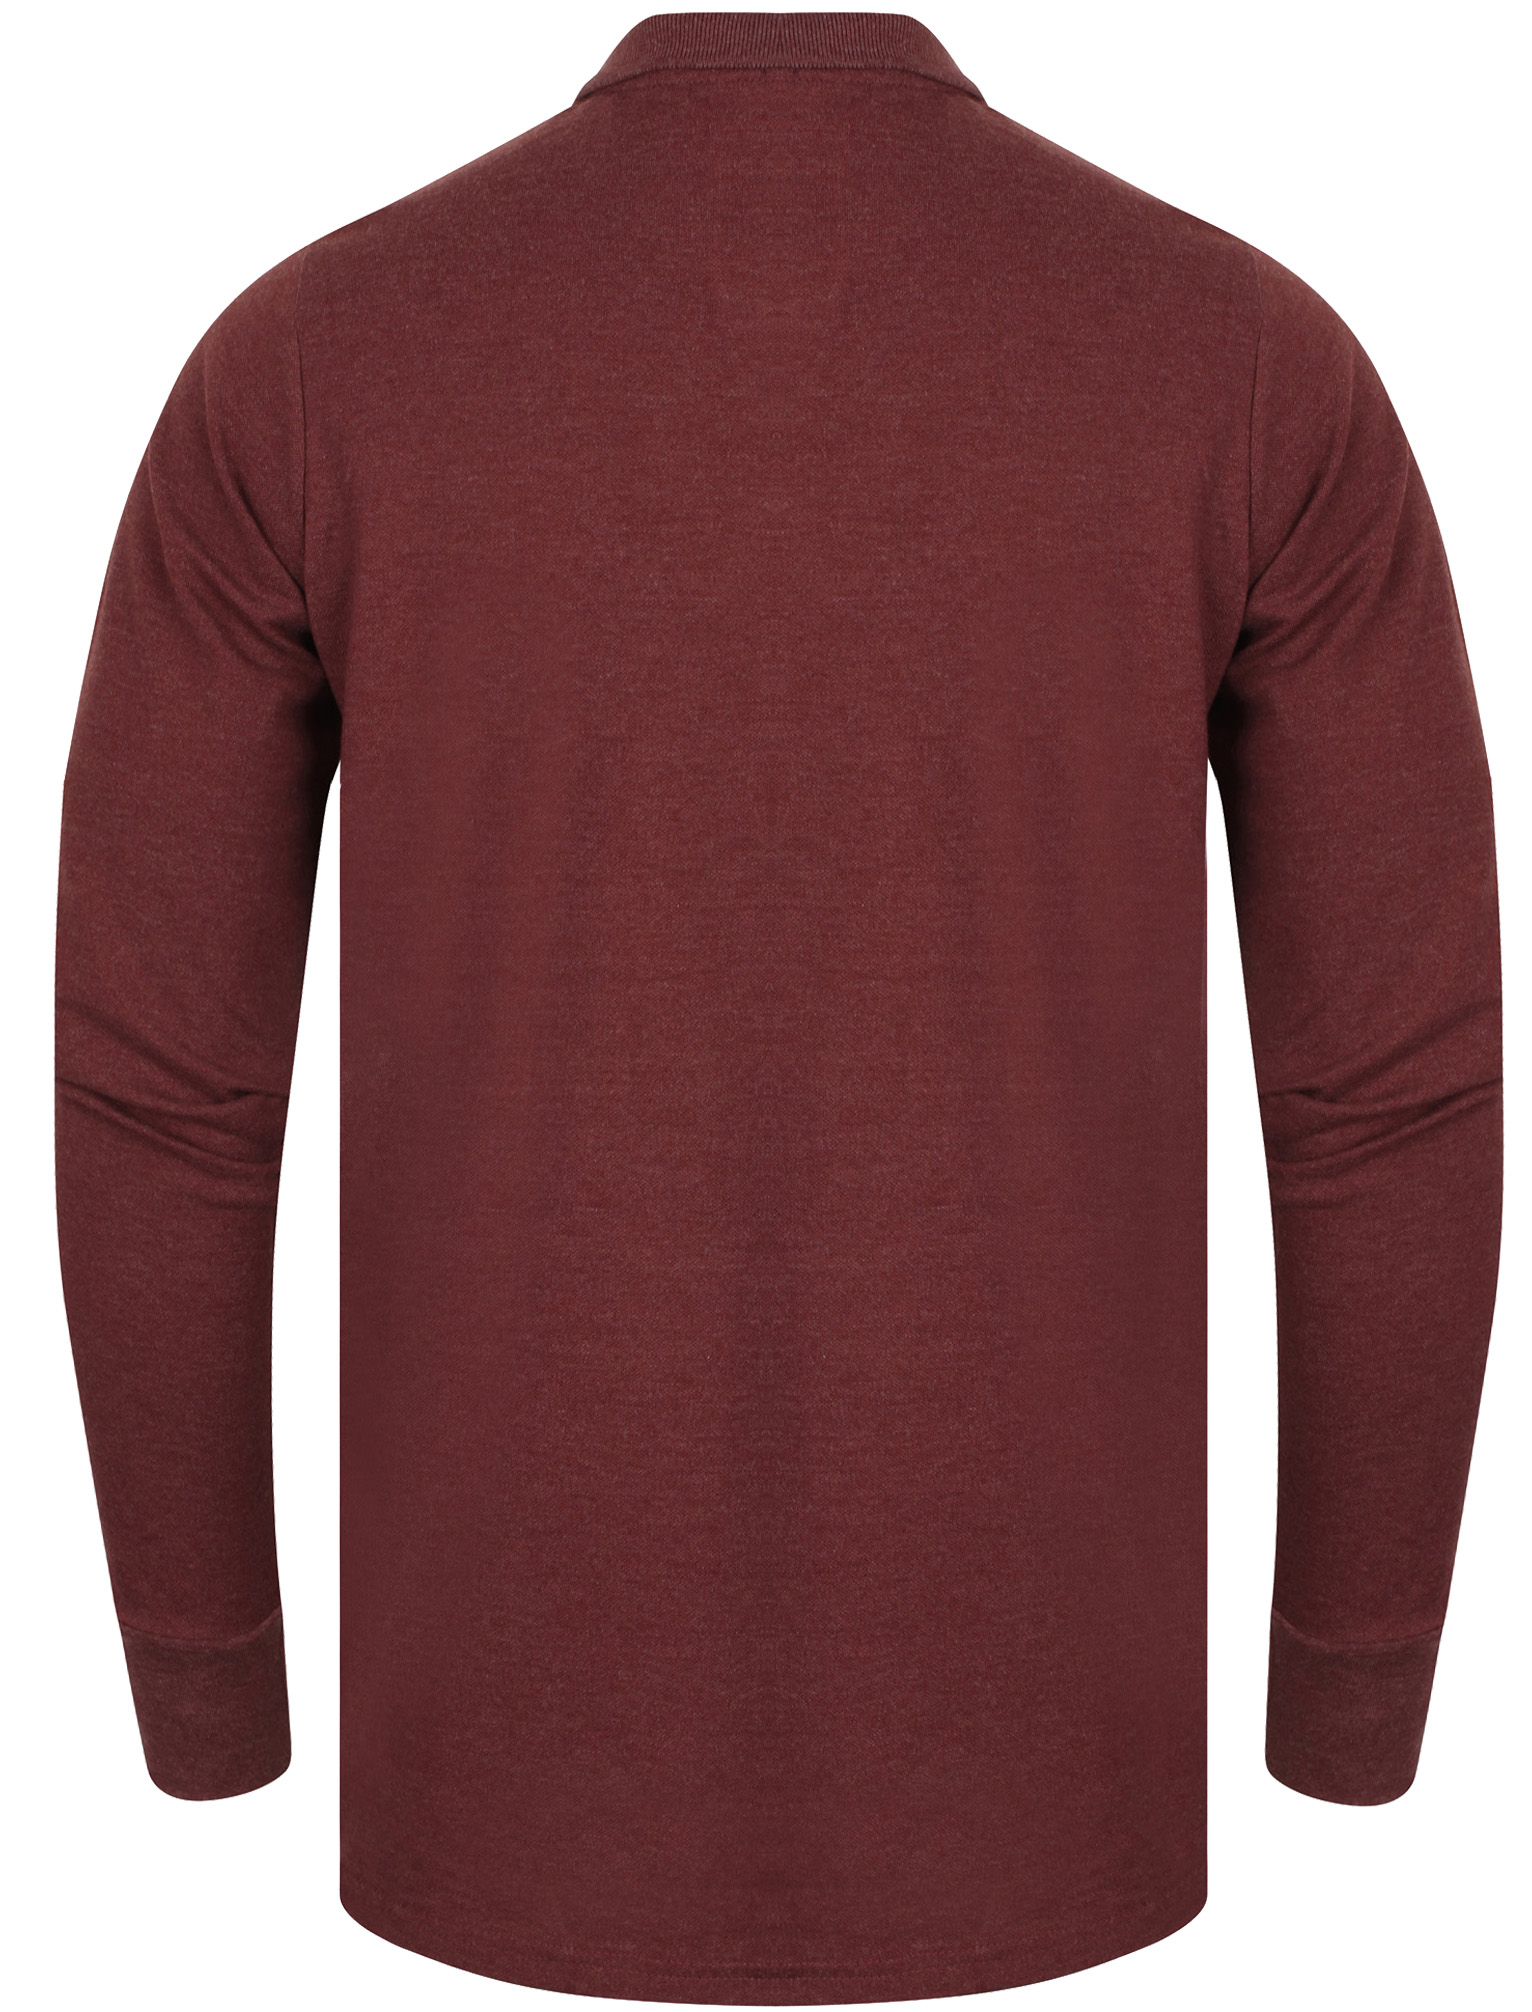 Tokyo-Laundry-Men-039-s-Cosenza-Long-Sleeve-Polo-Shirt-Top-Size-S-M-L-XL-XXL thumbnail 9